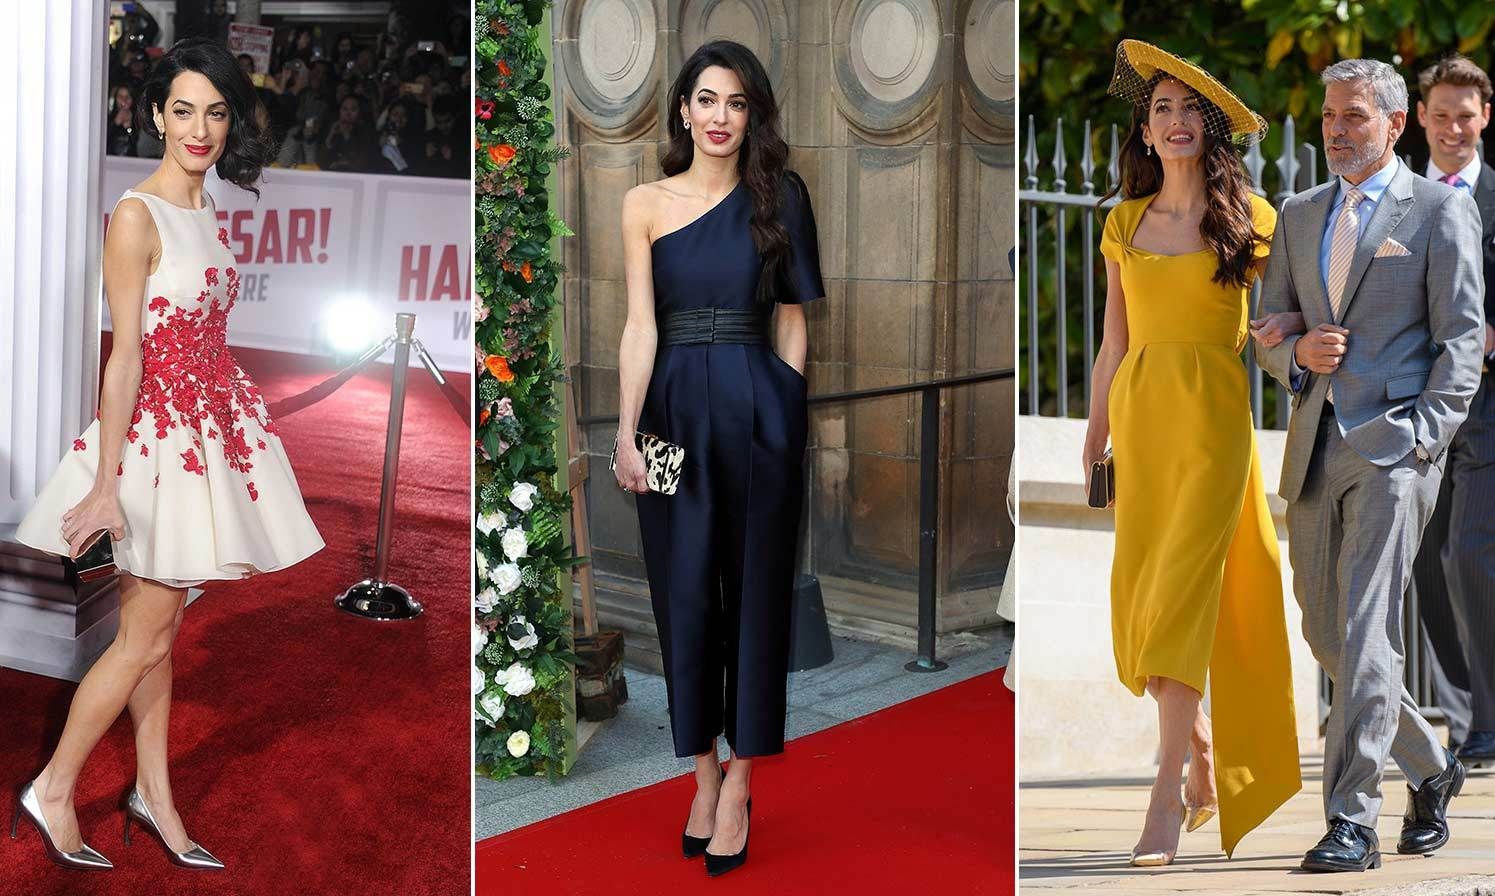 "<strong><a href=""/tags/0/amal-clooney"">Amal Clooney</a></strong> is an accomplished lawyer who does important human rights work. And over the years, she's also dazzled us repeatedly with her sense of style. She often mixes classic elements with some experimental flare, and always looks incredible in whatever she wears. 